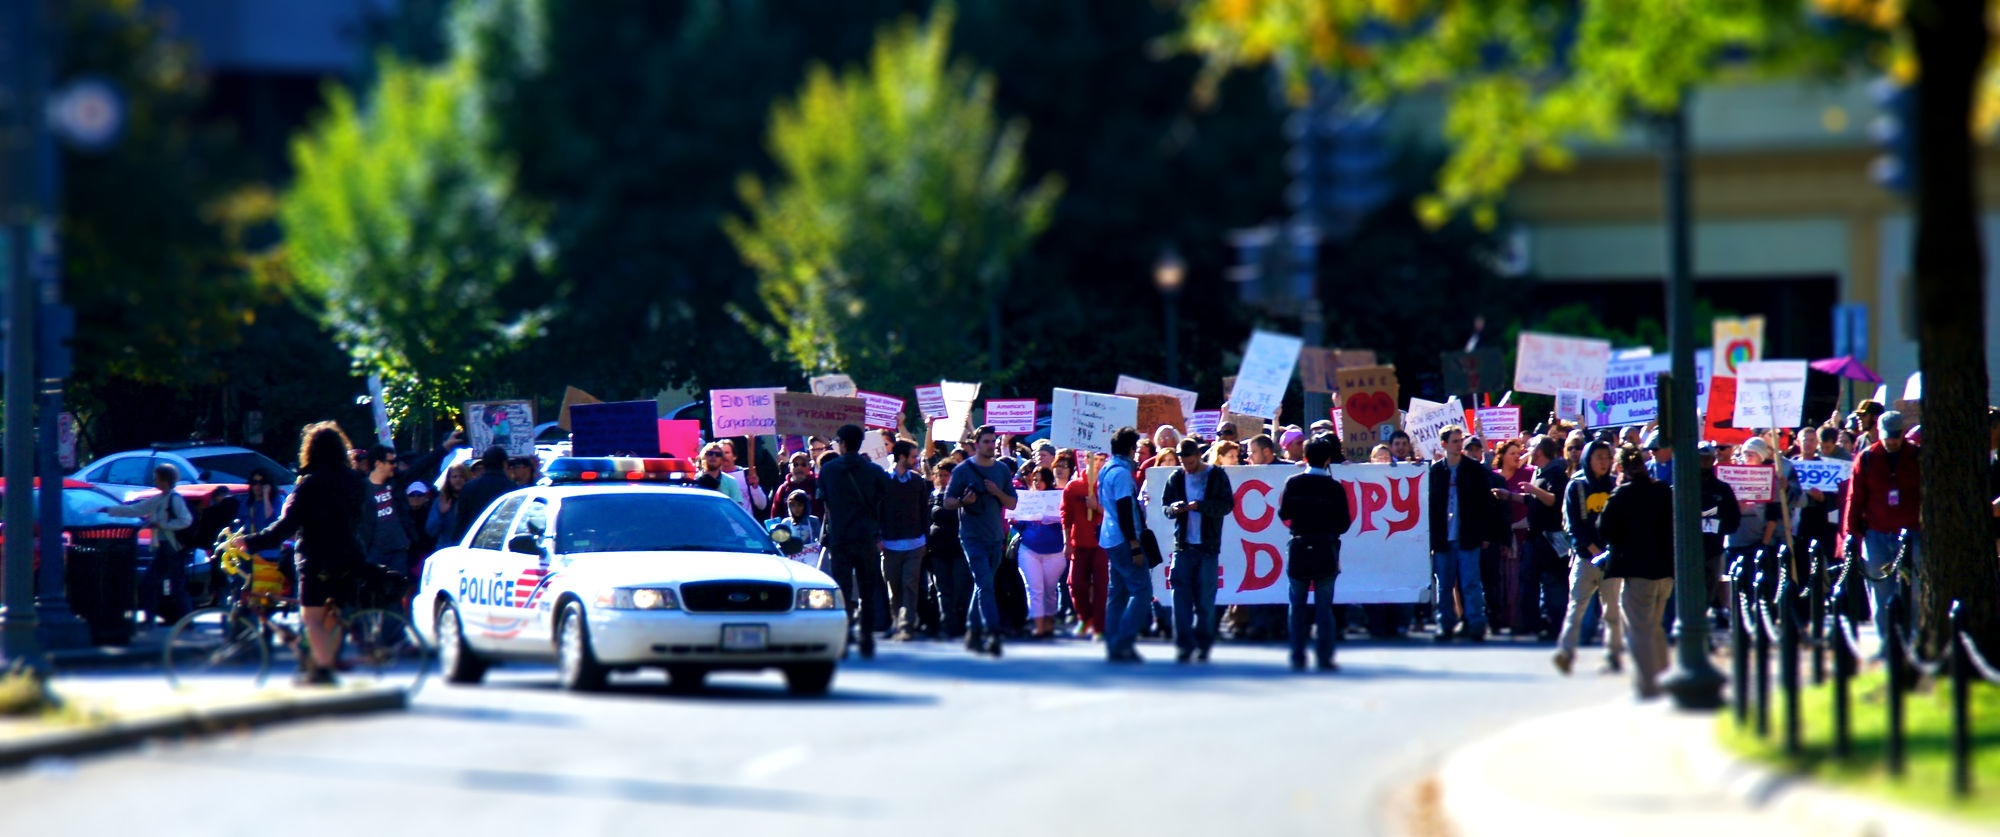 Occupy DC March - TiltShift